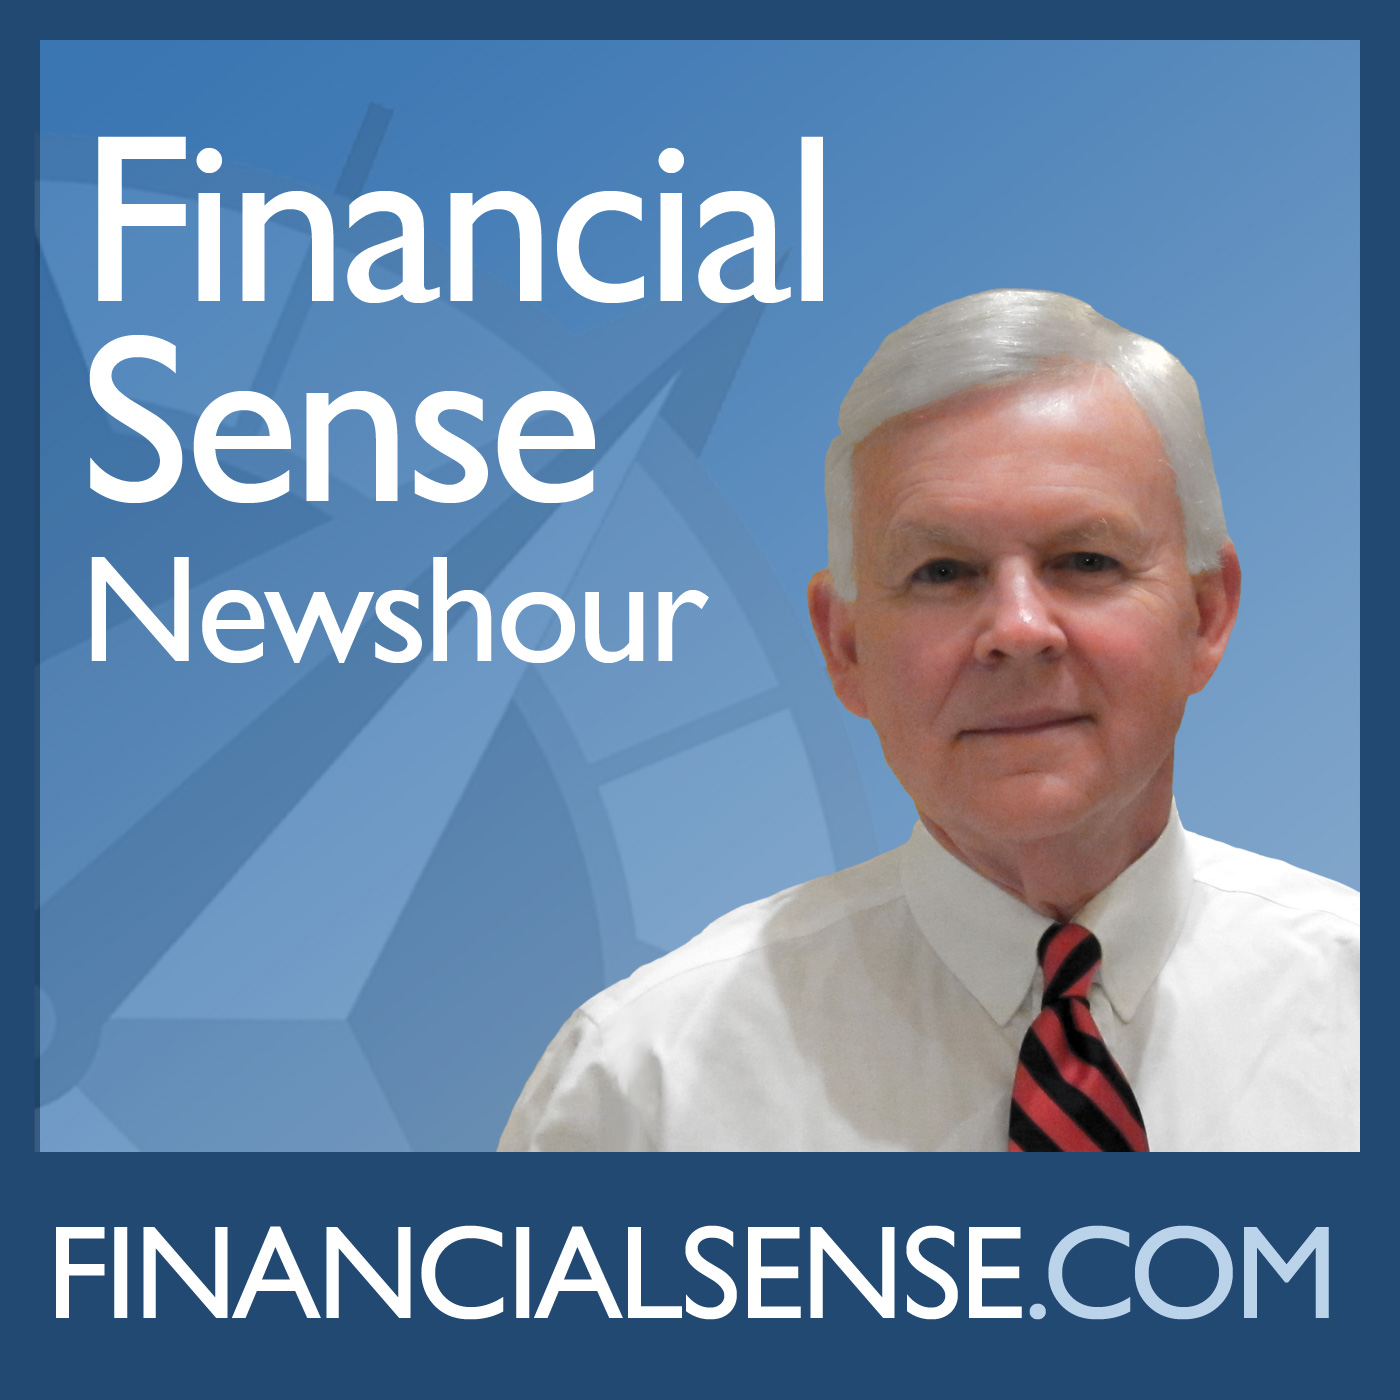 Financial Sense(R) Newshour